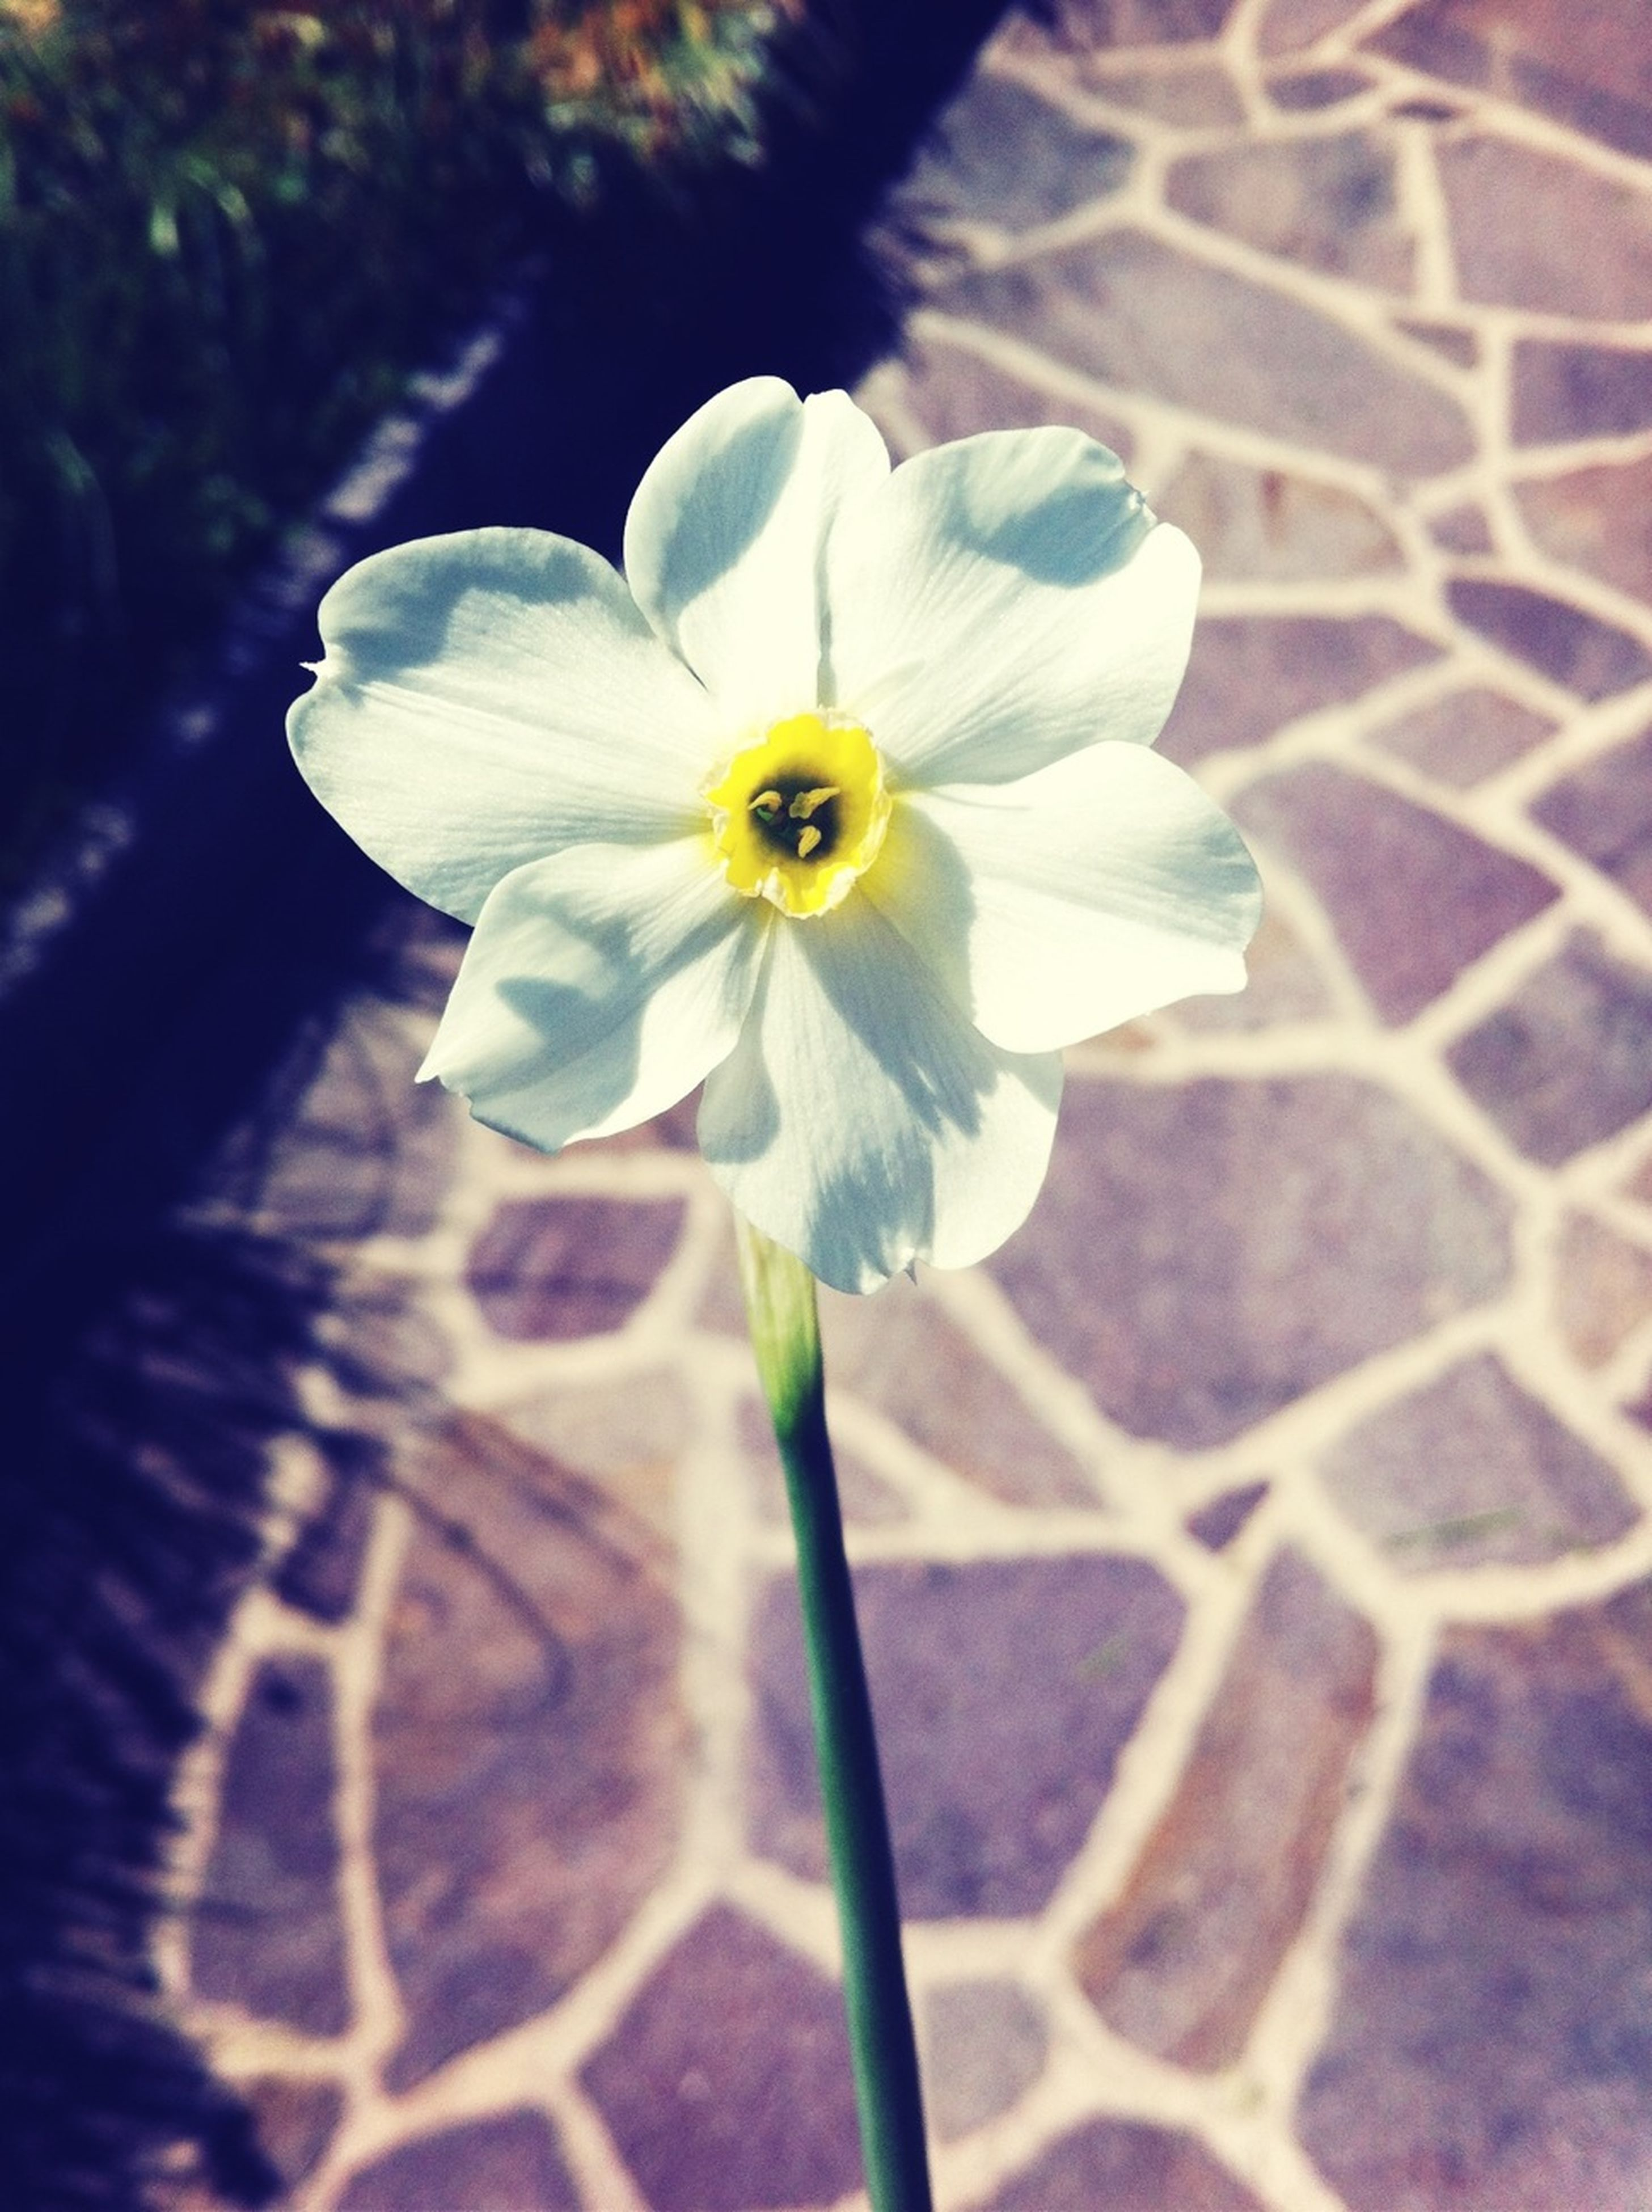 flower, petal, flower head, fragility, freshness, single flower, white color, close-up, blooming, focus on foreground, growth, beauty in nature, nature, plant, day, outdoors, park - man made space, sunlight, in bloom, no people